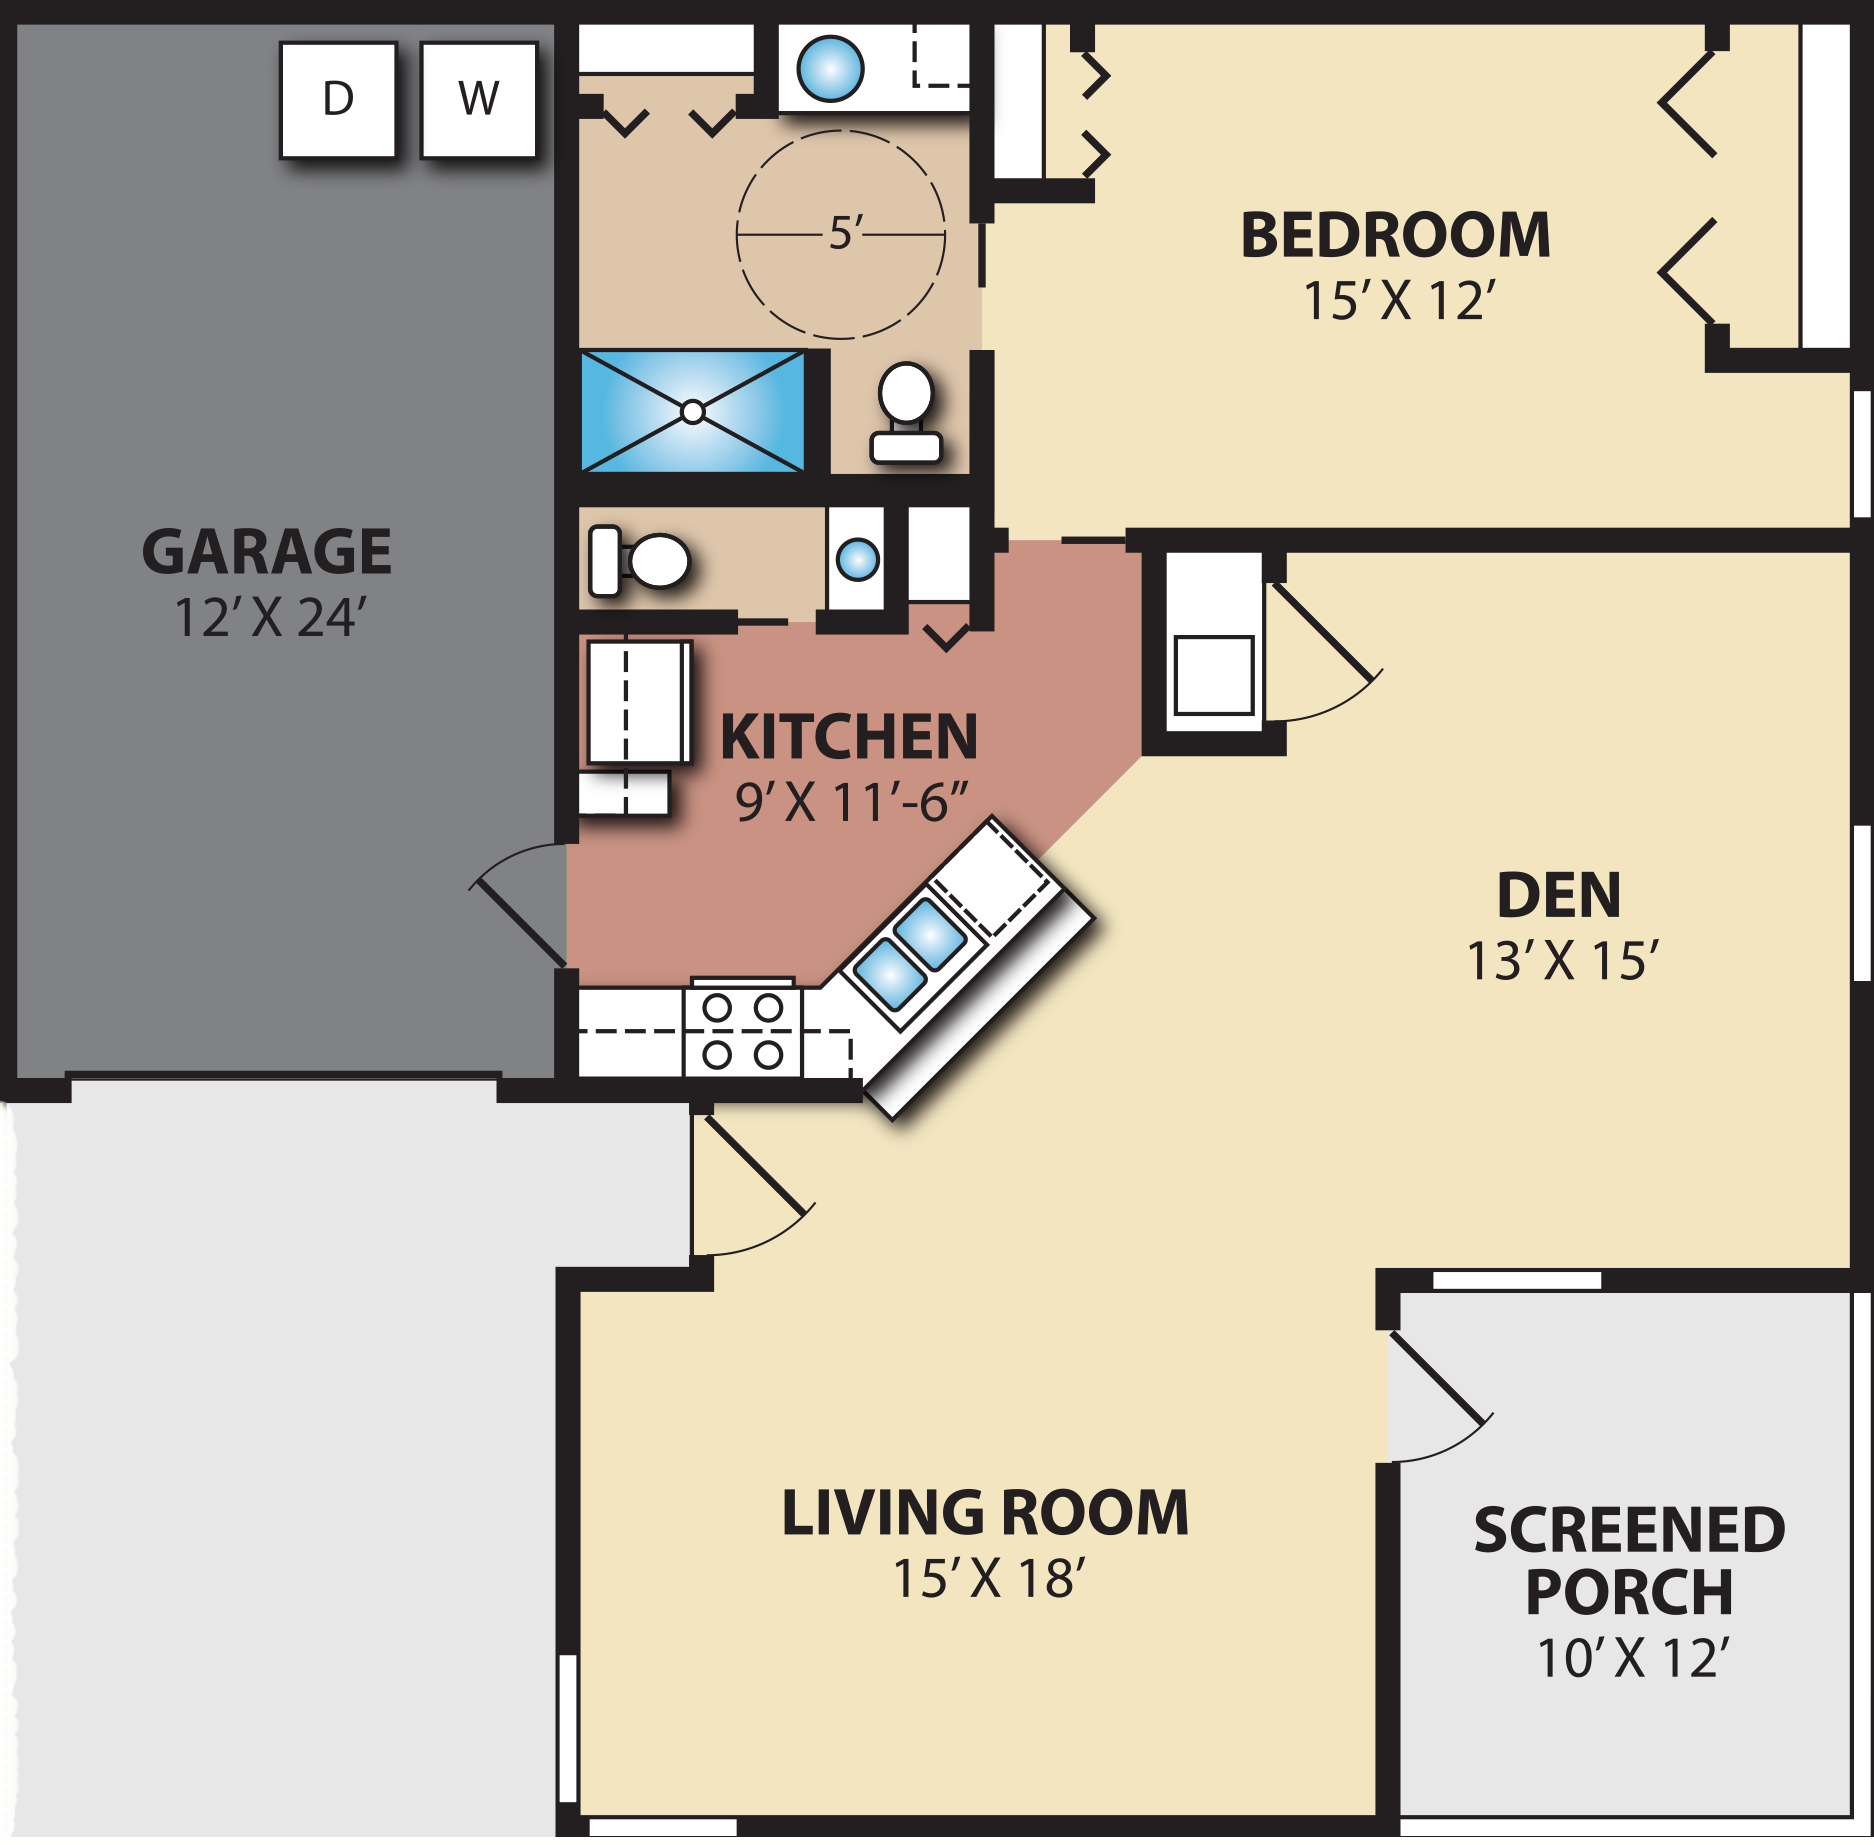 13 x 15 living room layout for 15 x 10 living room